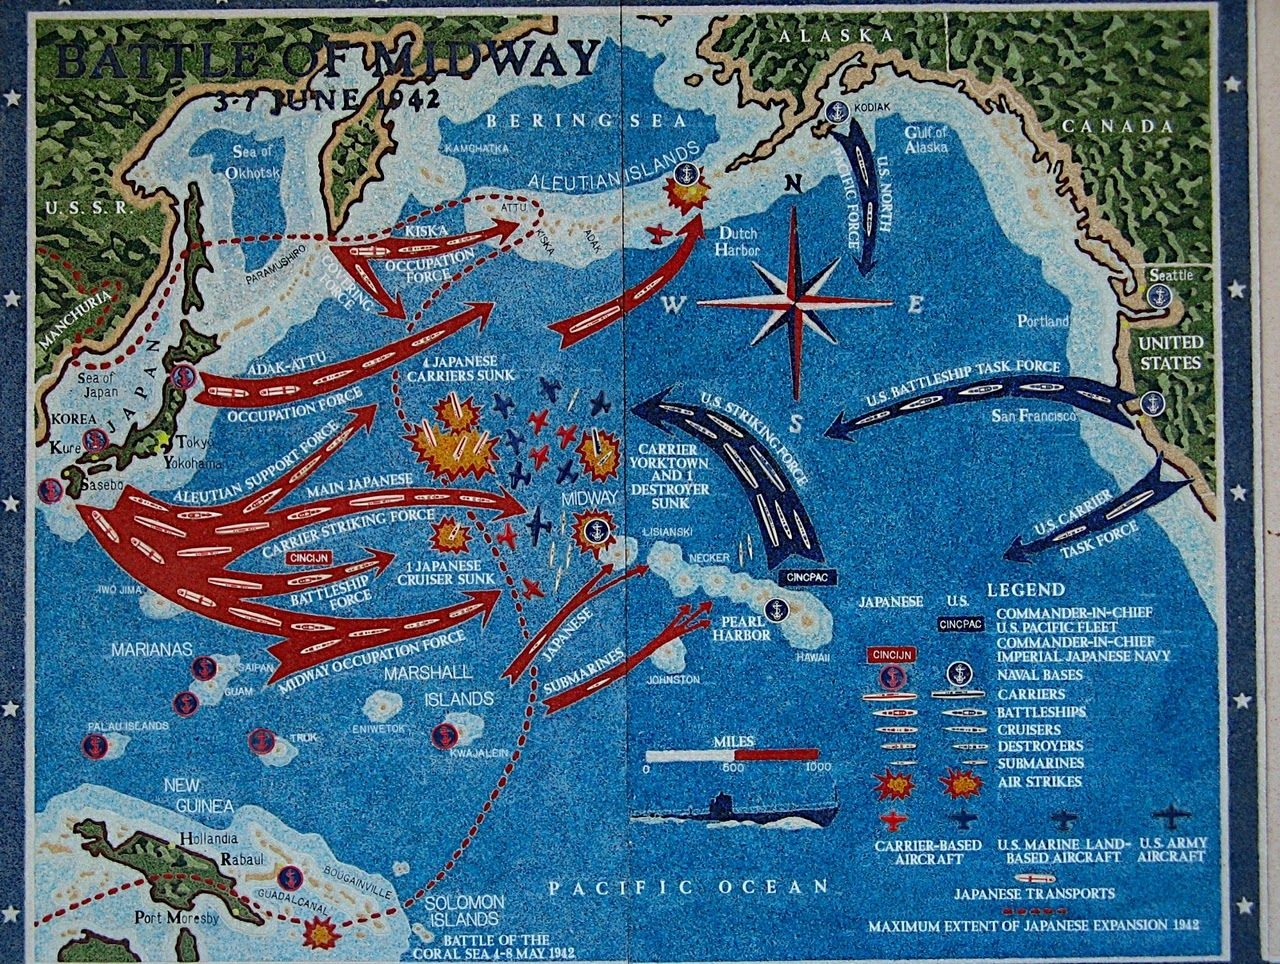 Awesome Map Battle of Midway 42